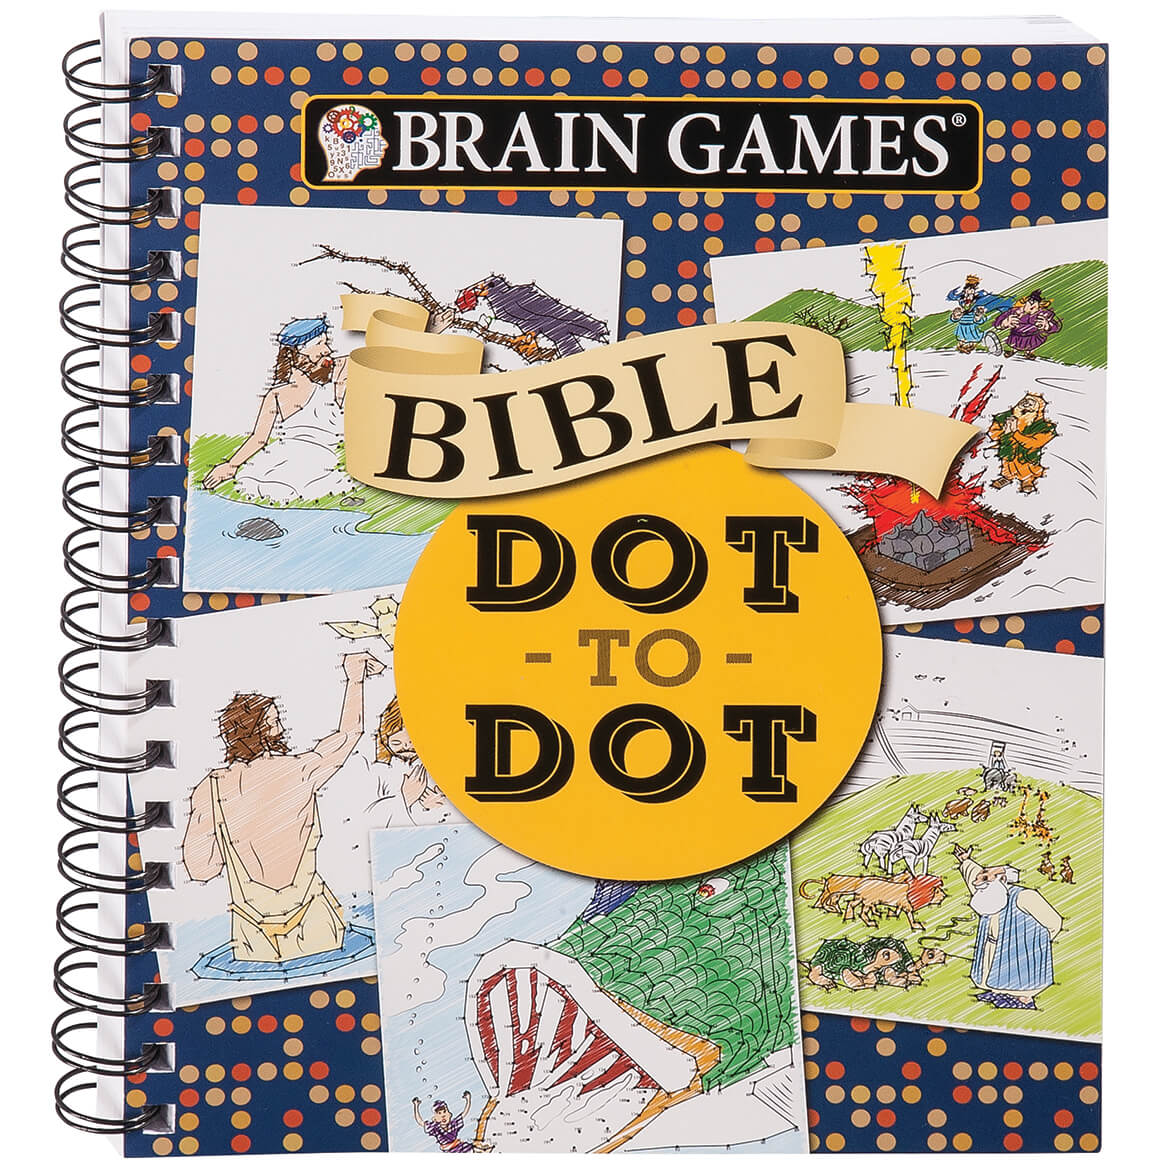 Brain Games Bible Dot to Dot With over 100 dot-to-dot puzzles centered on New and Old Testament Bible passages, this Brain Games Bible Dot-to-Dot combines a spiritual boost along with a brain-enhancing workout. From depictions of Jesus healing the sick to verses encouraging your faith, the adult dot-to-dot puzzles help test your focus and concentration while learning more about the Good Book. Spiral binding keeps this softcover Brain Games book flat during use. 160 pages with answer key in back. 9 1/4  x 7 1/2 .